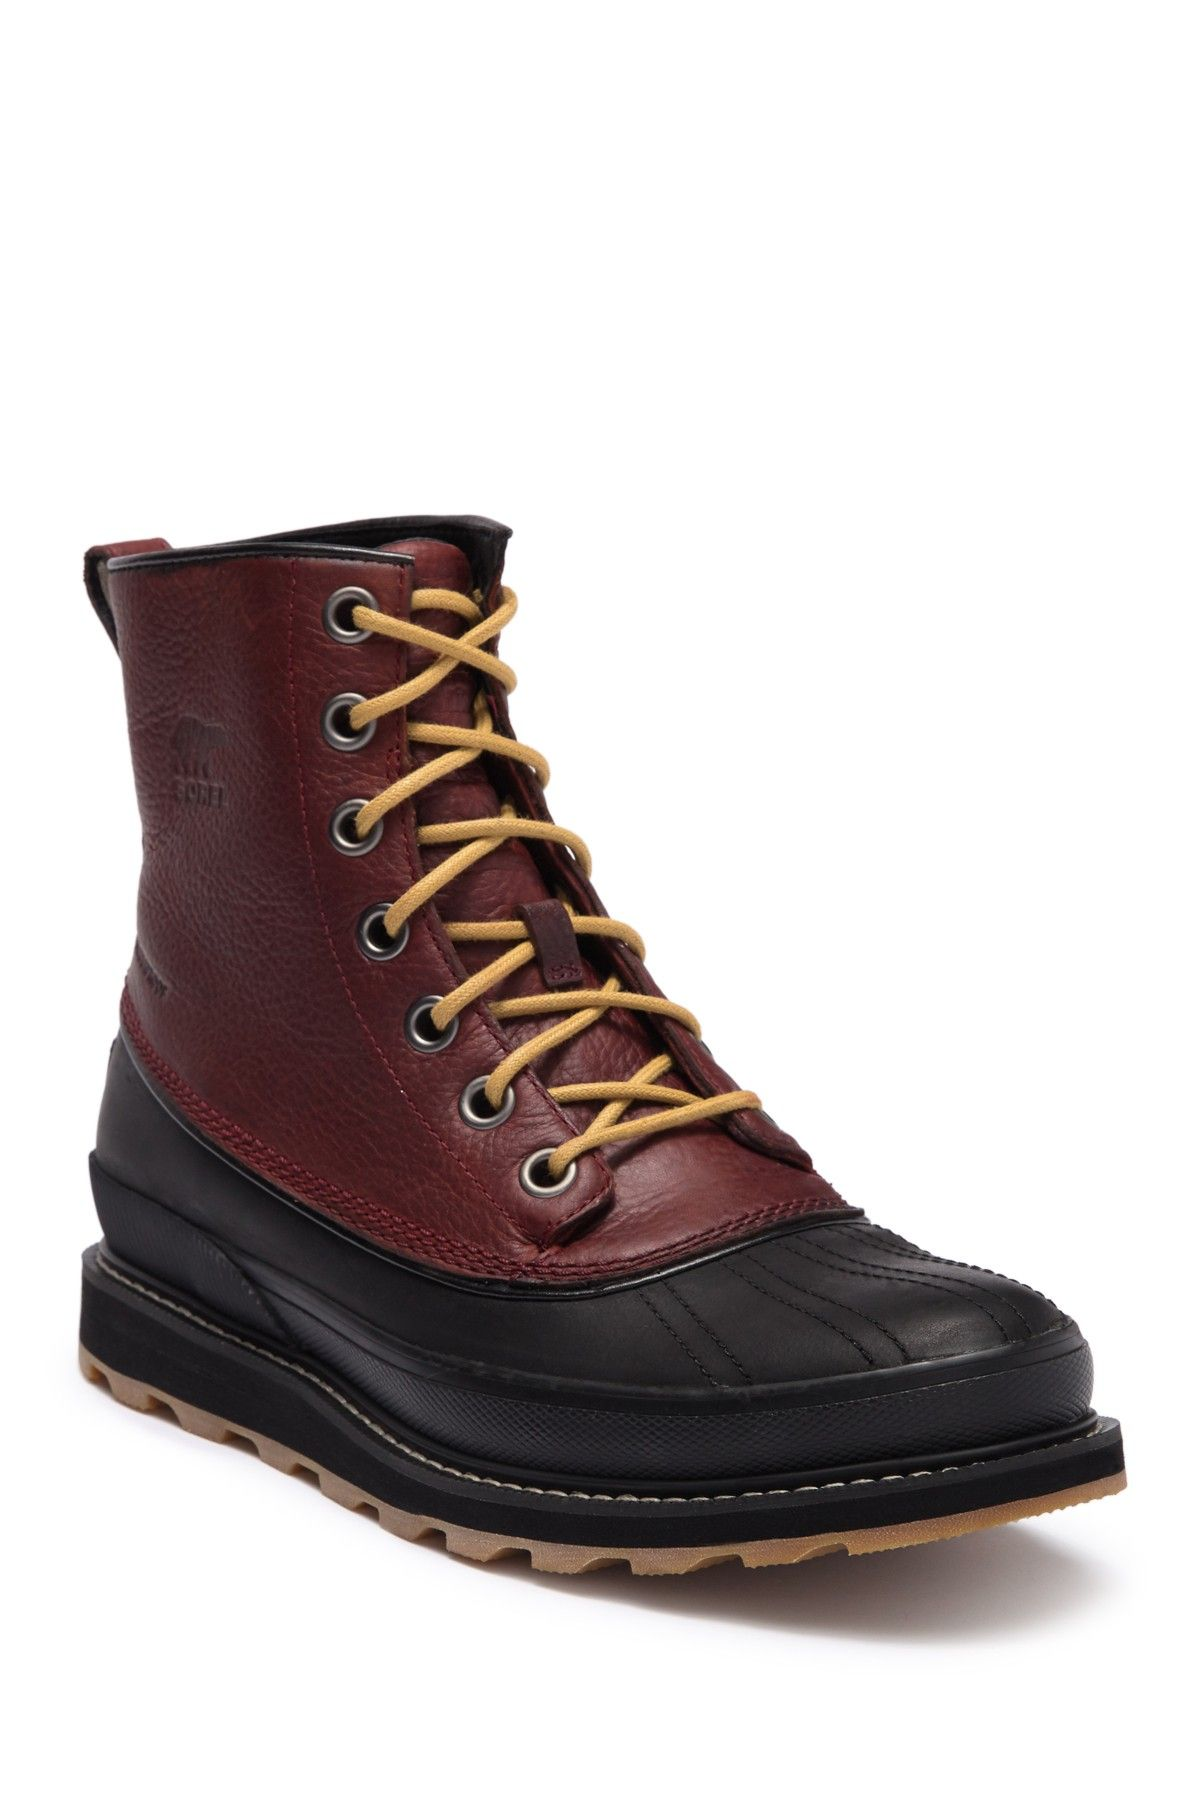 978764488a1 Madson 1964 Waterproof Leather Boot by Sorel on  nordstrom rack